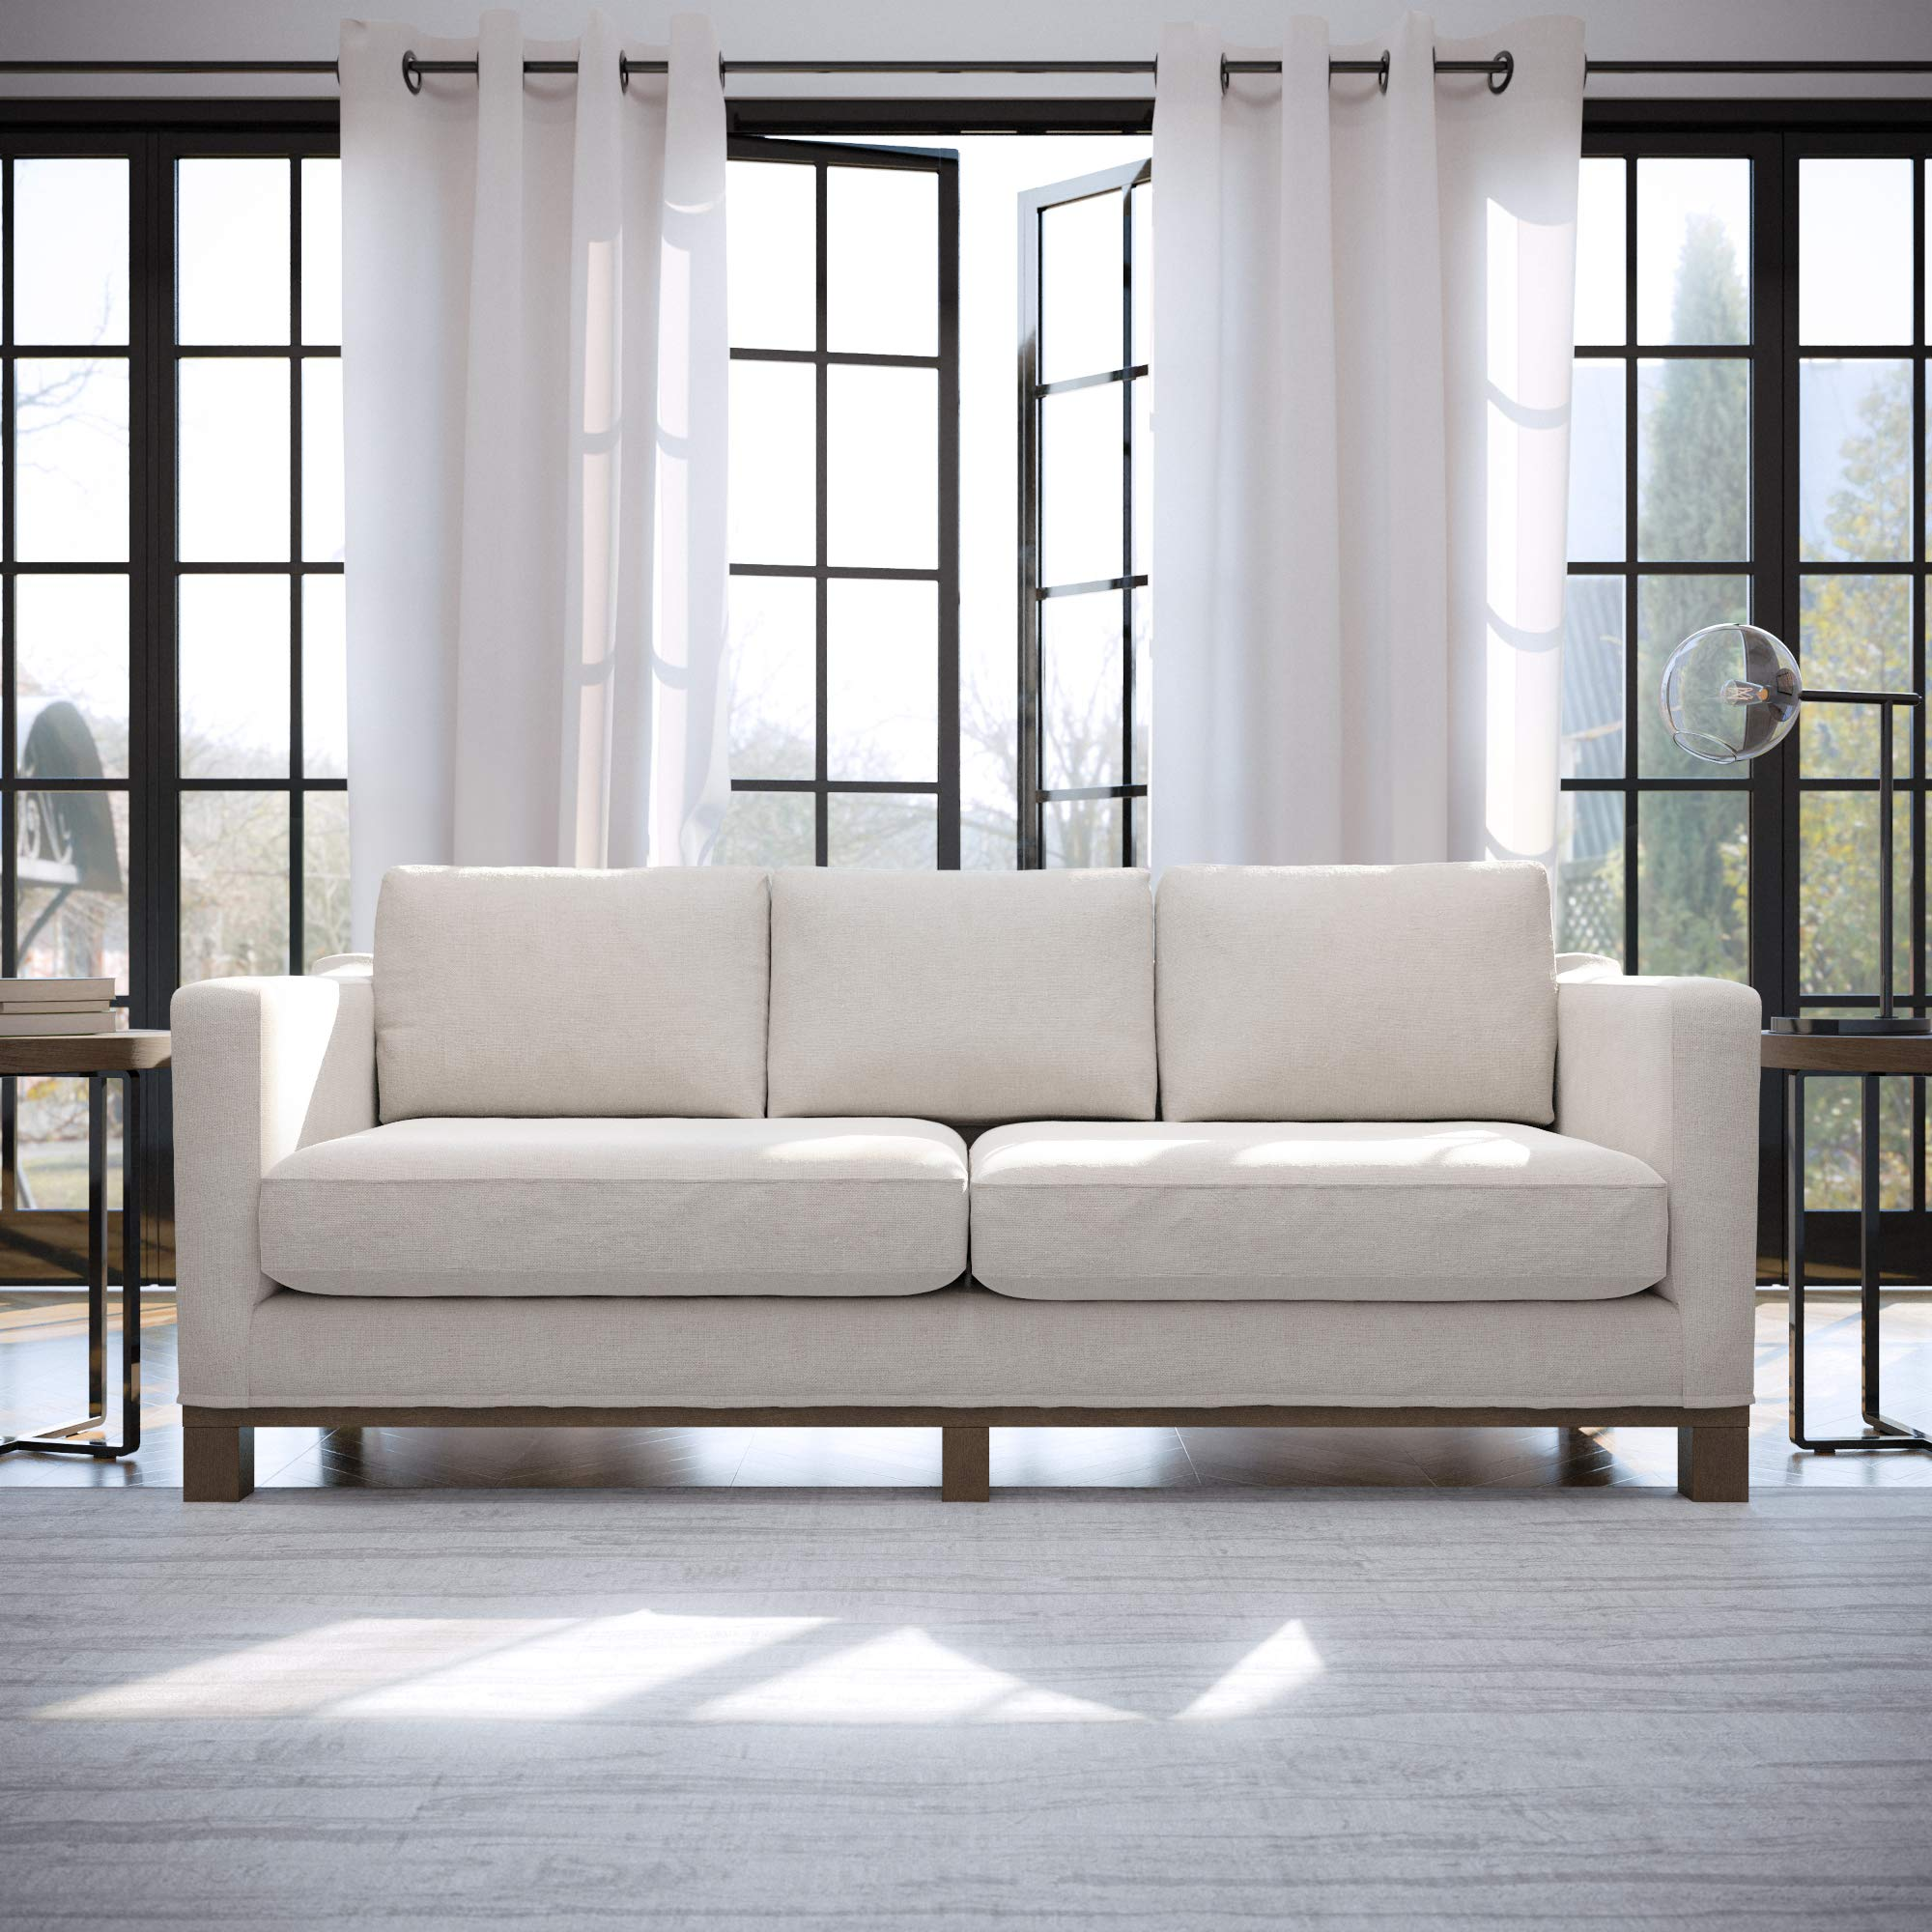 Edenbrook Parkview Upholstered Wood Base-Two-Cushion Design-Contemporary Feel, Sofa, Weathered Oat